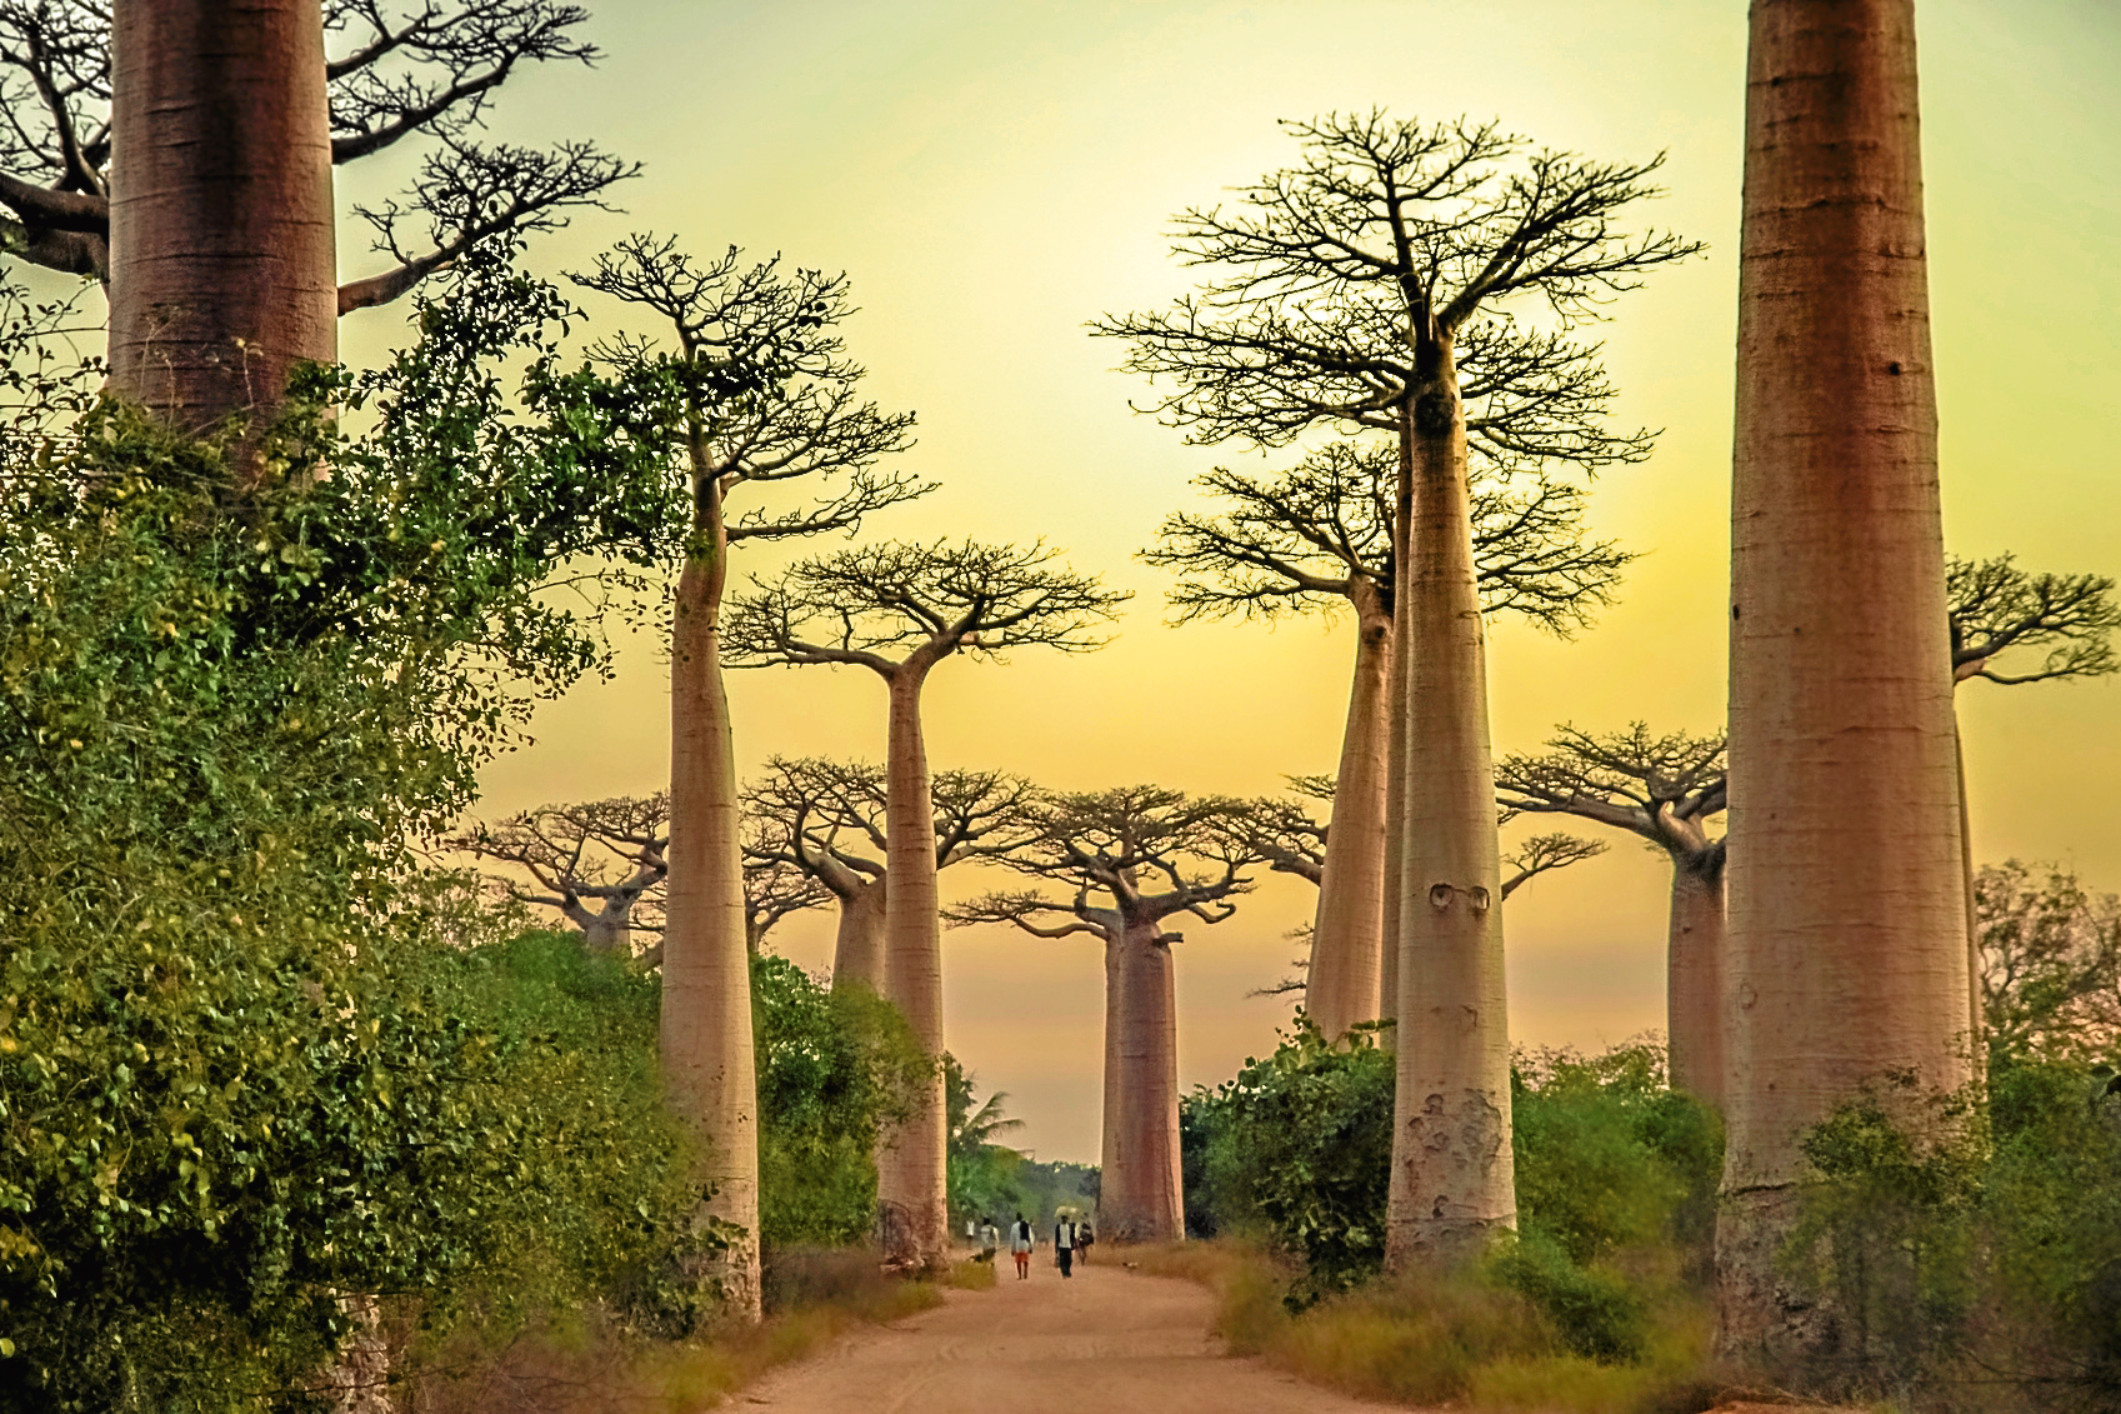 Sunset in the famous Avenida de Baobab near Morondava in Madagascar